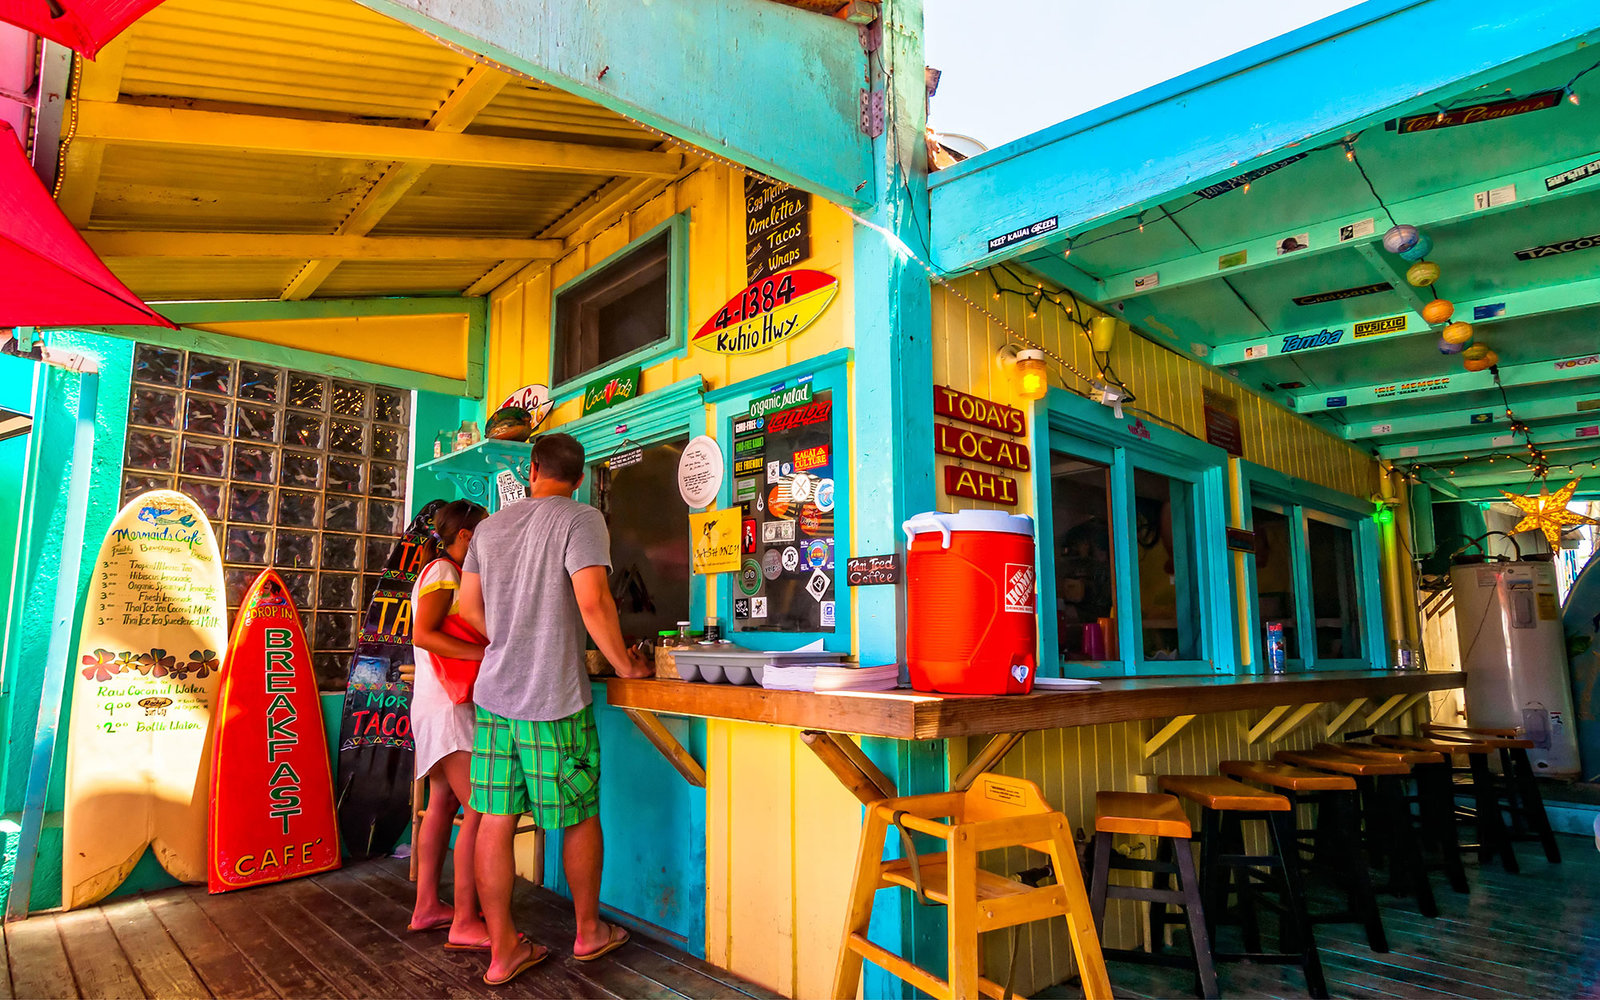 EG8E9C KAPAA, HAWAII -  AUGUST 28 - day view of picturesque Mermaids Cafe on August 28, 2013 in Kapaa, Kauai, HI, USA .Mermaids Cafe is